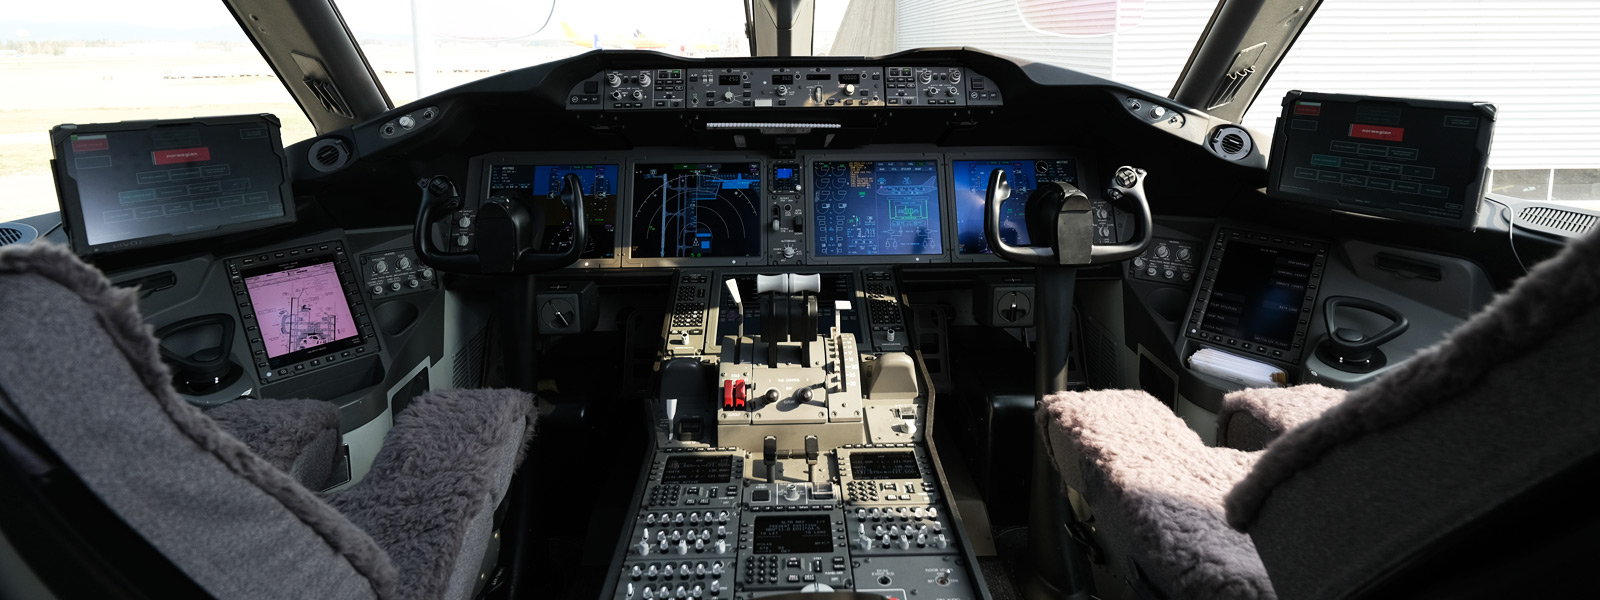 The cockpit of a Norwegian Airlines aeroplane